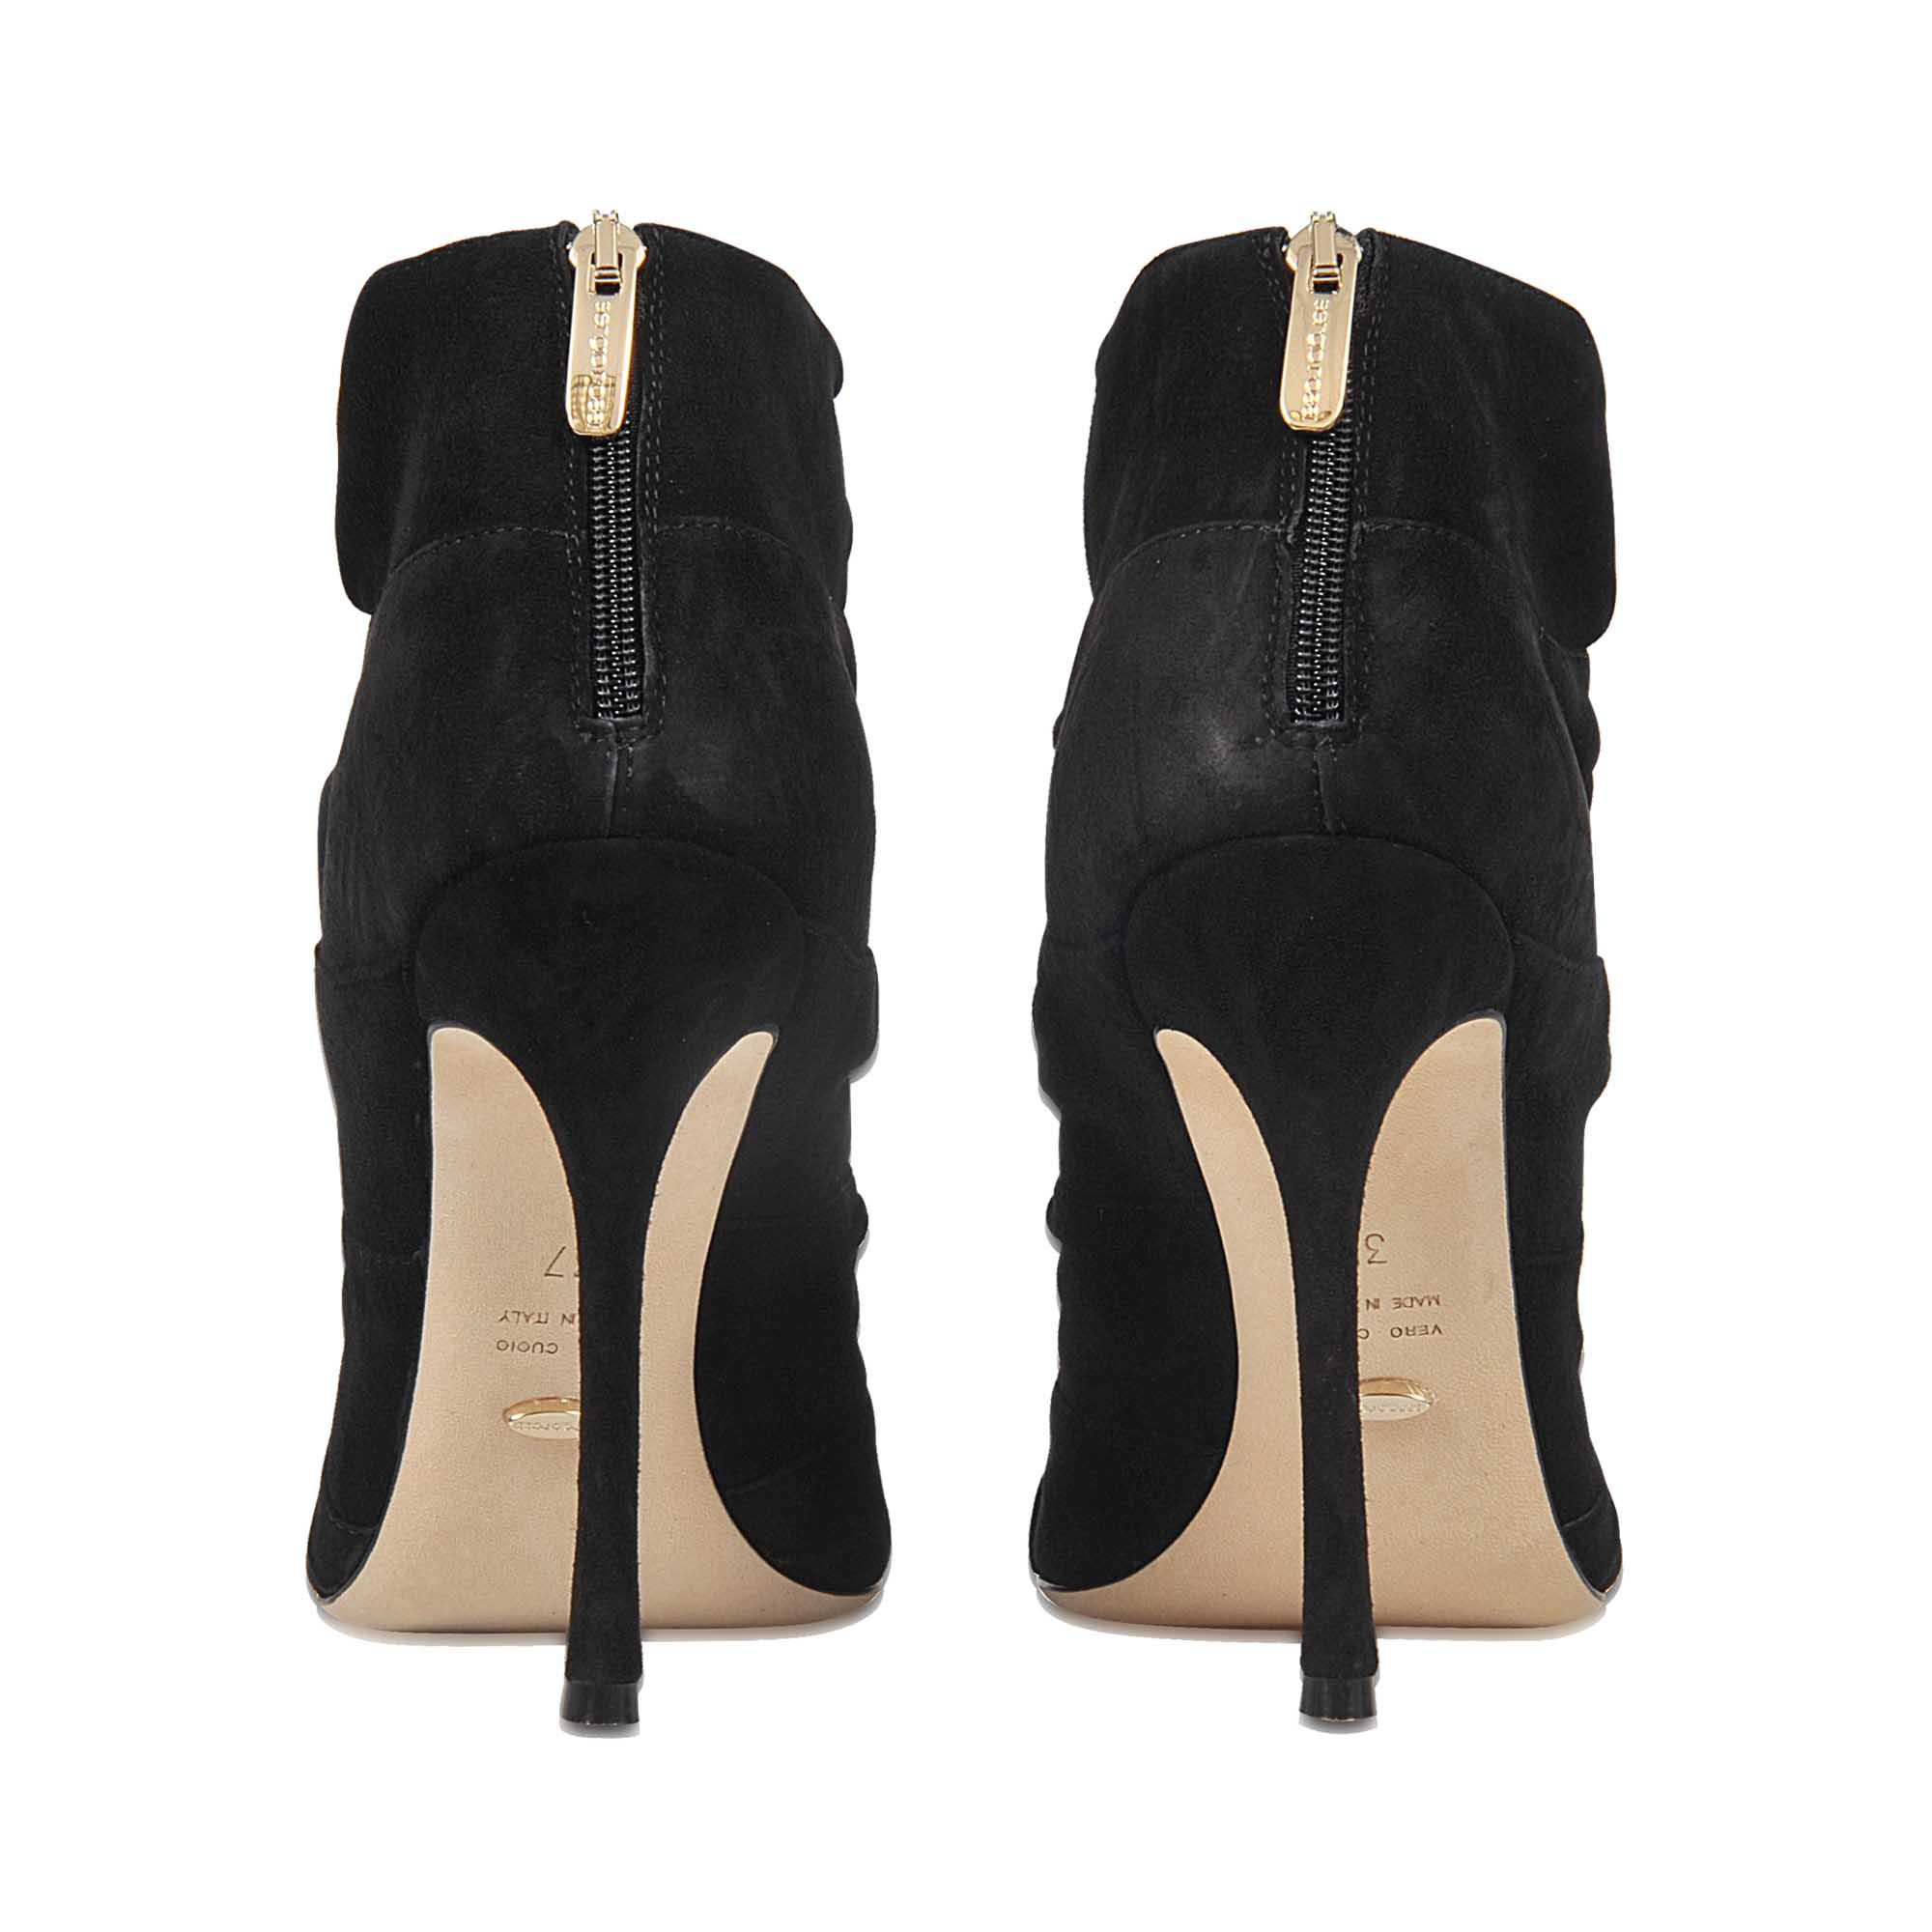 Divine knotted bootie Sergio Rossi AH4gvm